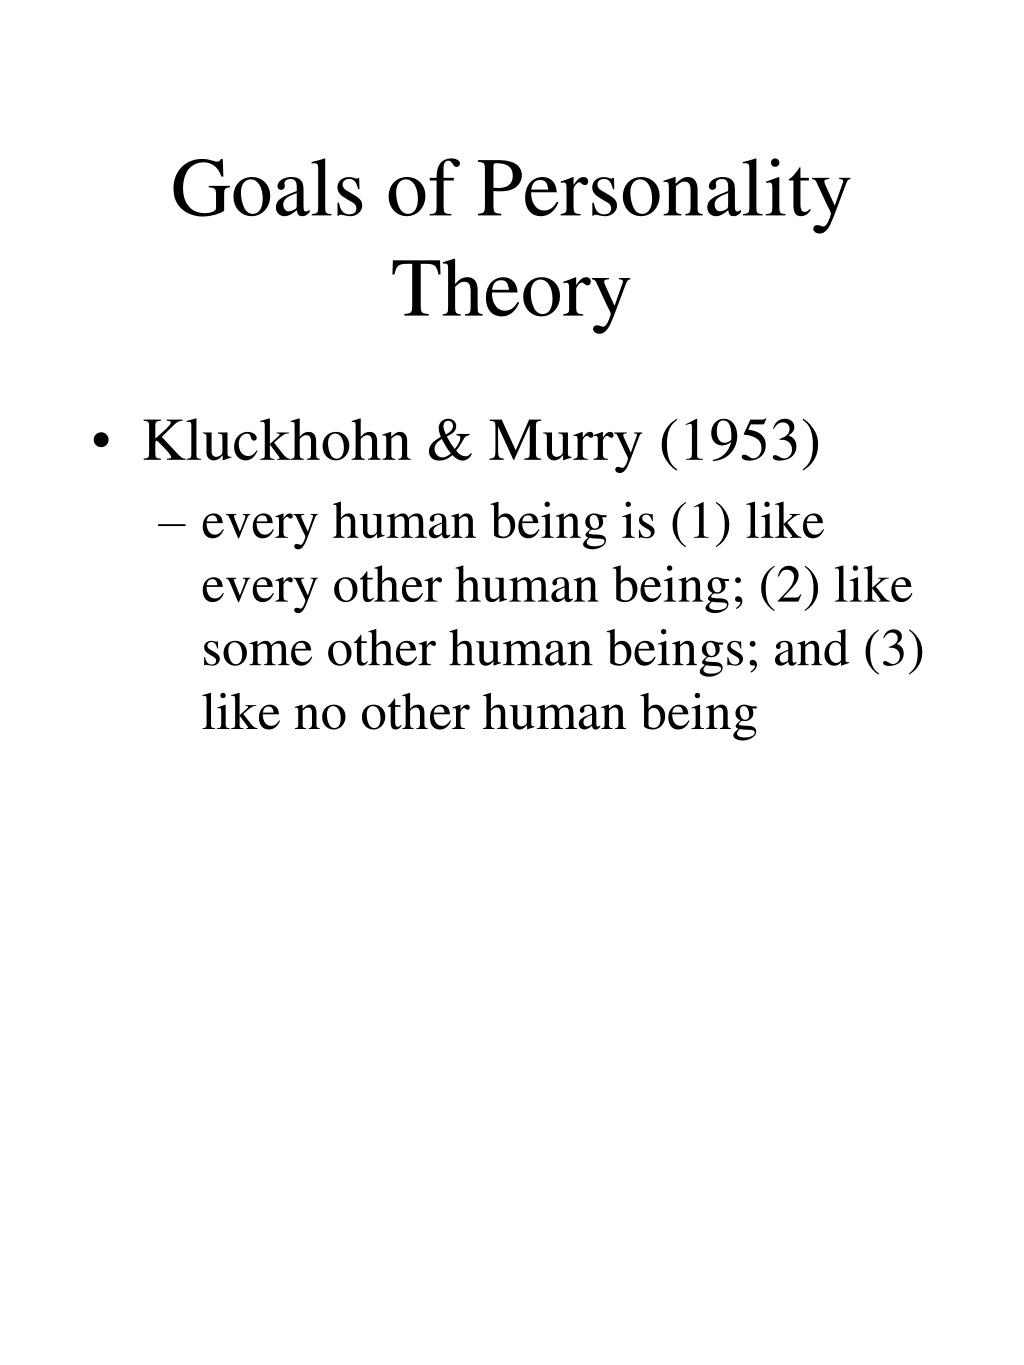 Goals of Personality Theory